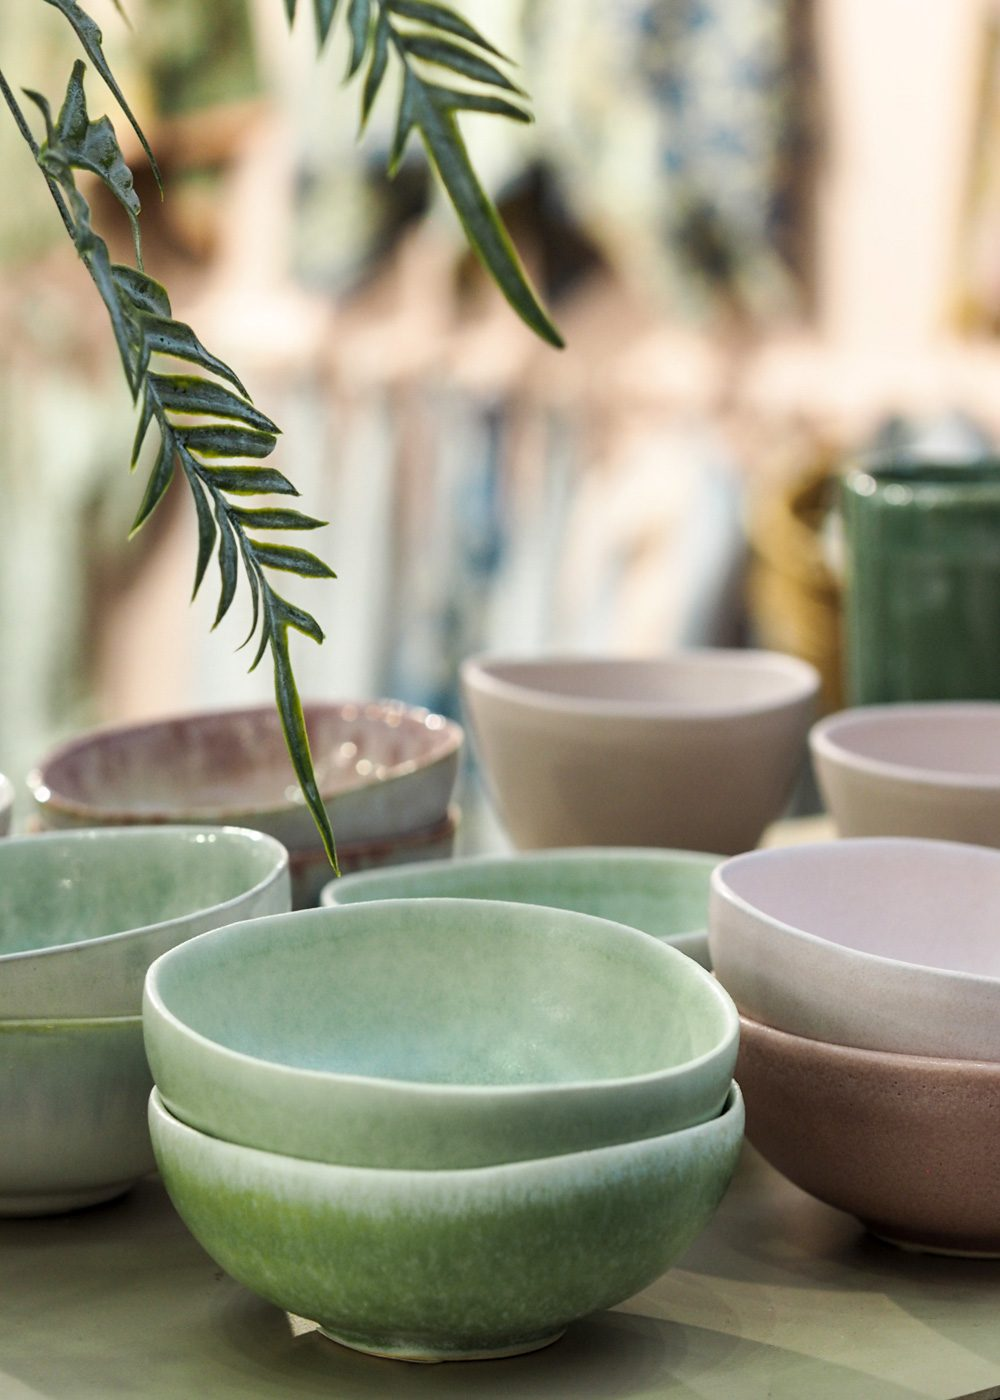 Green bowls from Bungalow Denmark